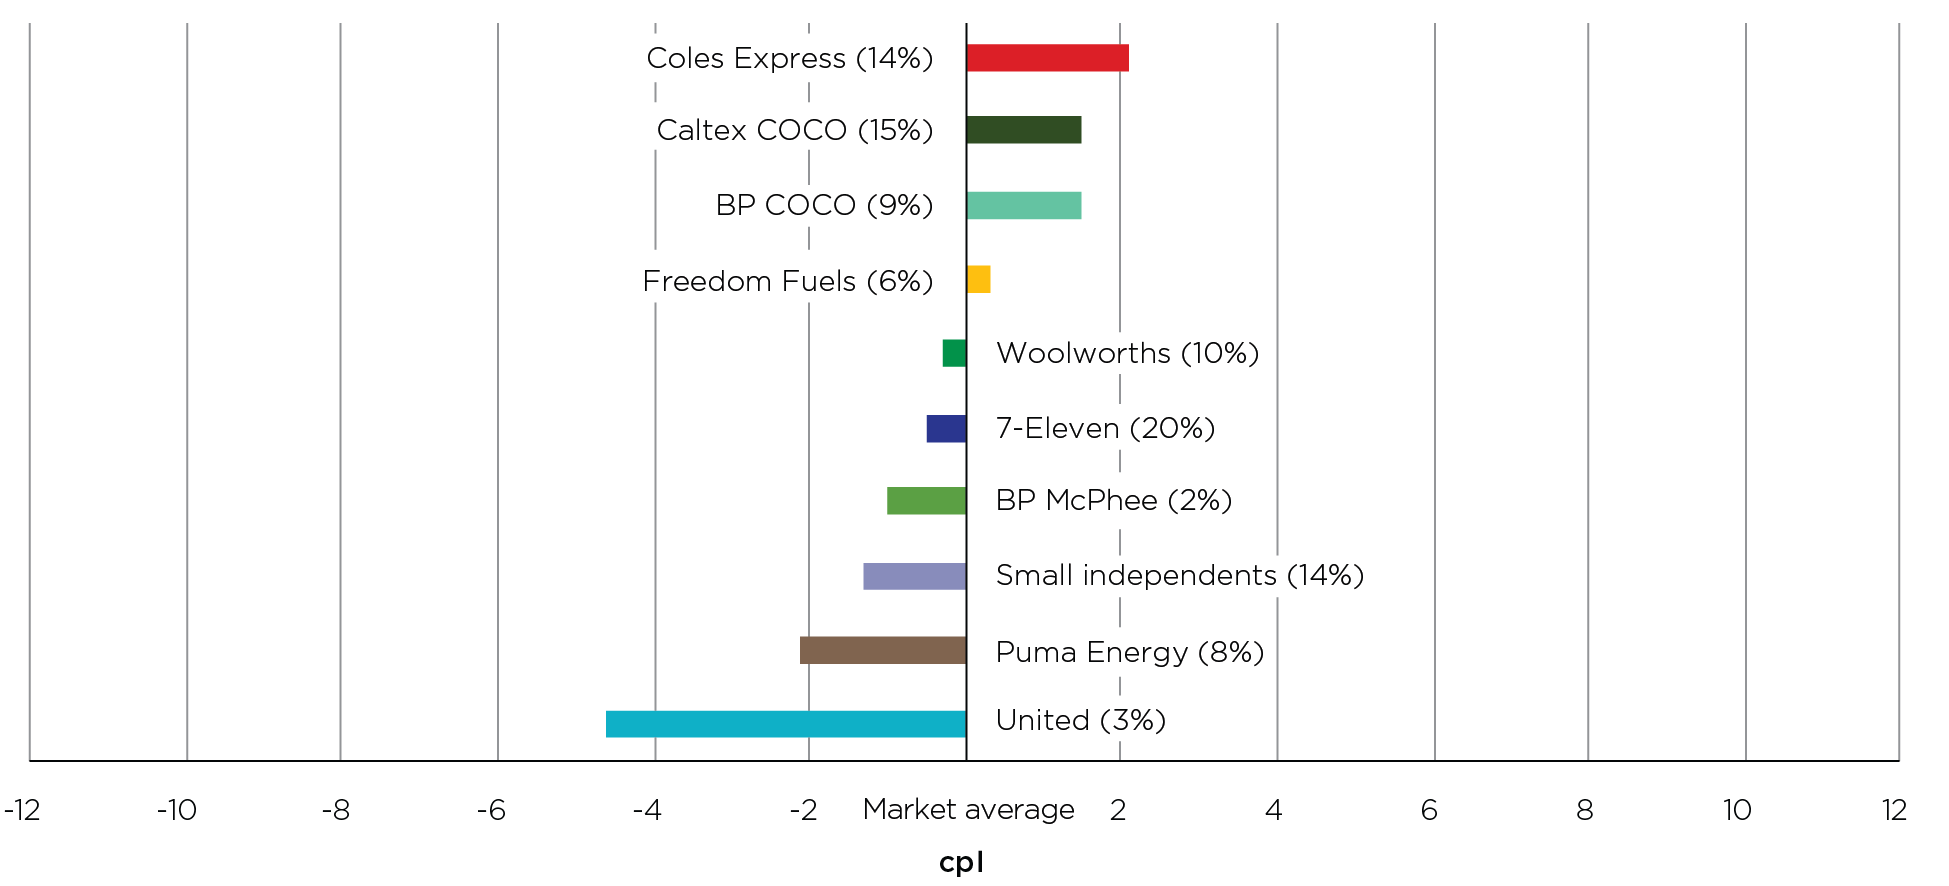 In 2020, Brisbane motorists could have saved 6.7 cents per litre by buying petrol at the lowest-priced retailer, which was United, rather than the highest-priced retailer, which was Coles Express.